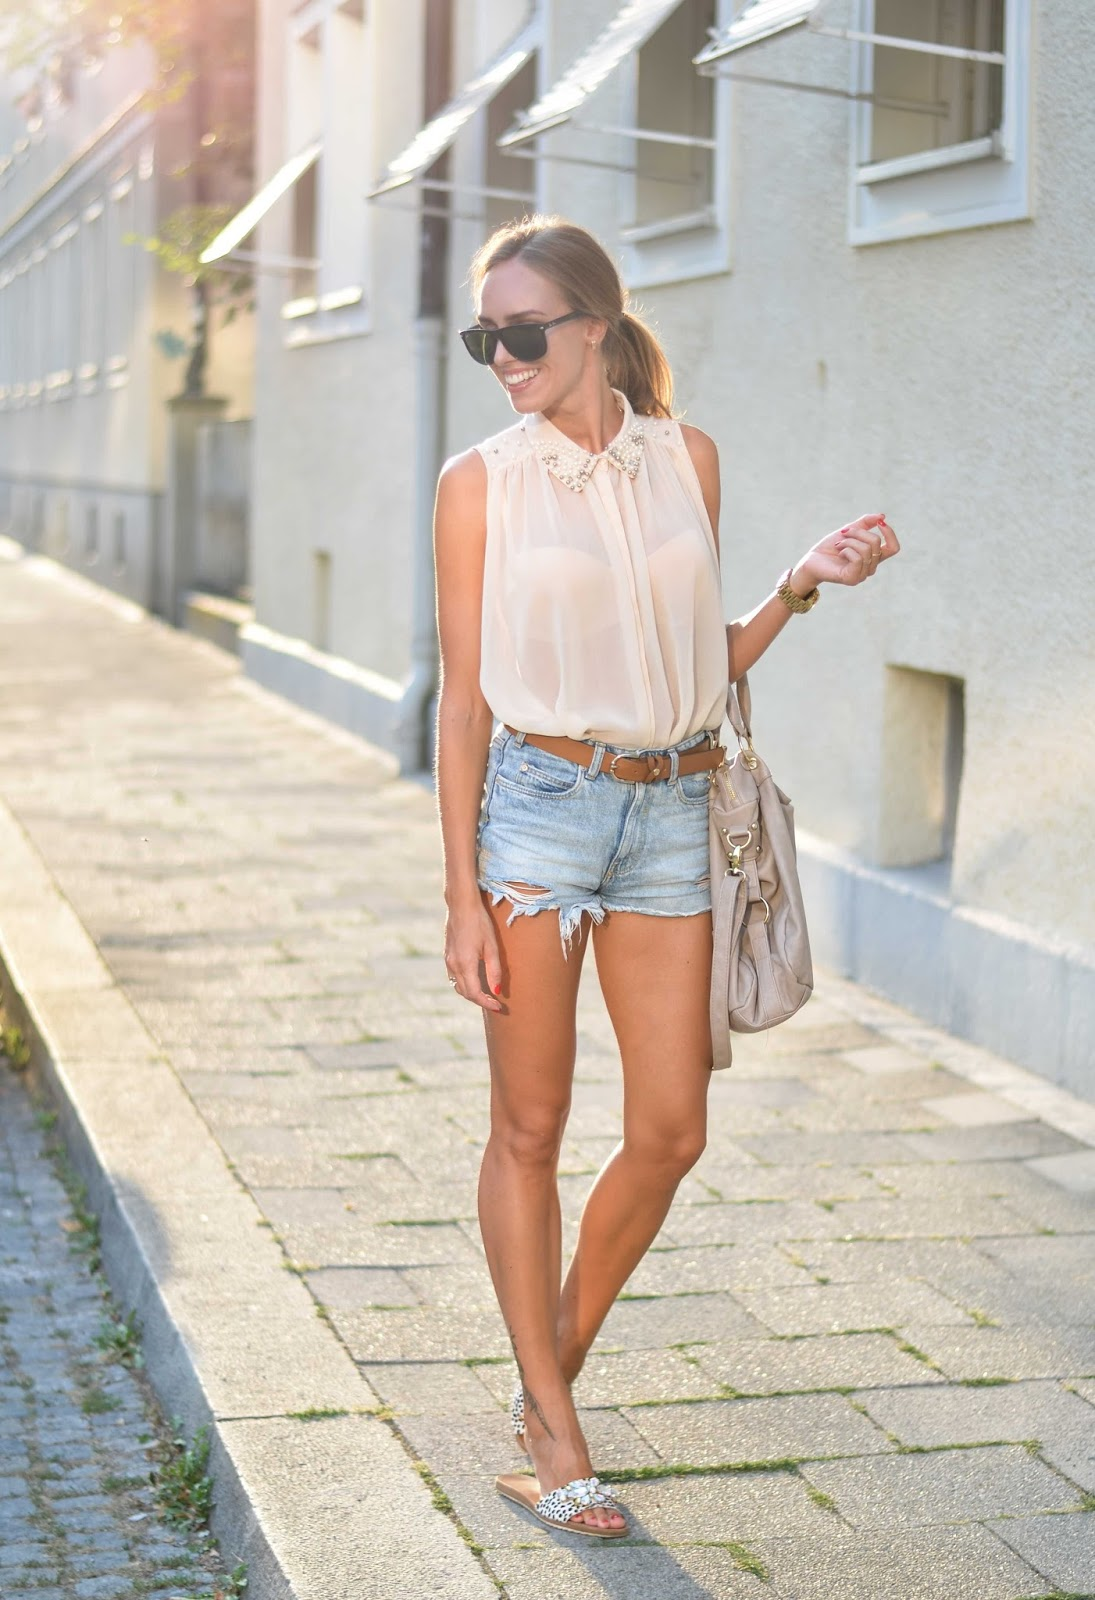 kristjaana mere munich fashion blogger summer outfit